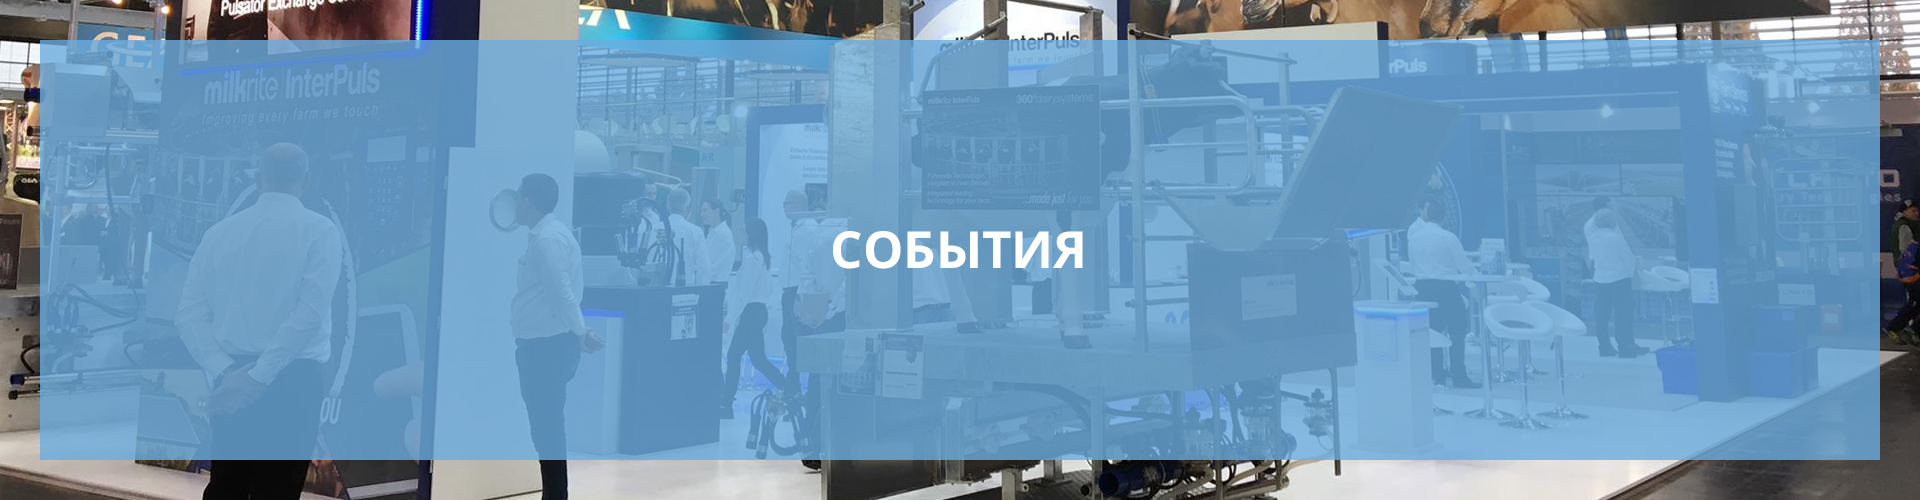 main events light blue banner Russian 1920x500px